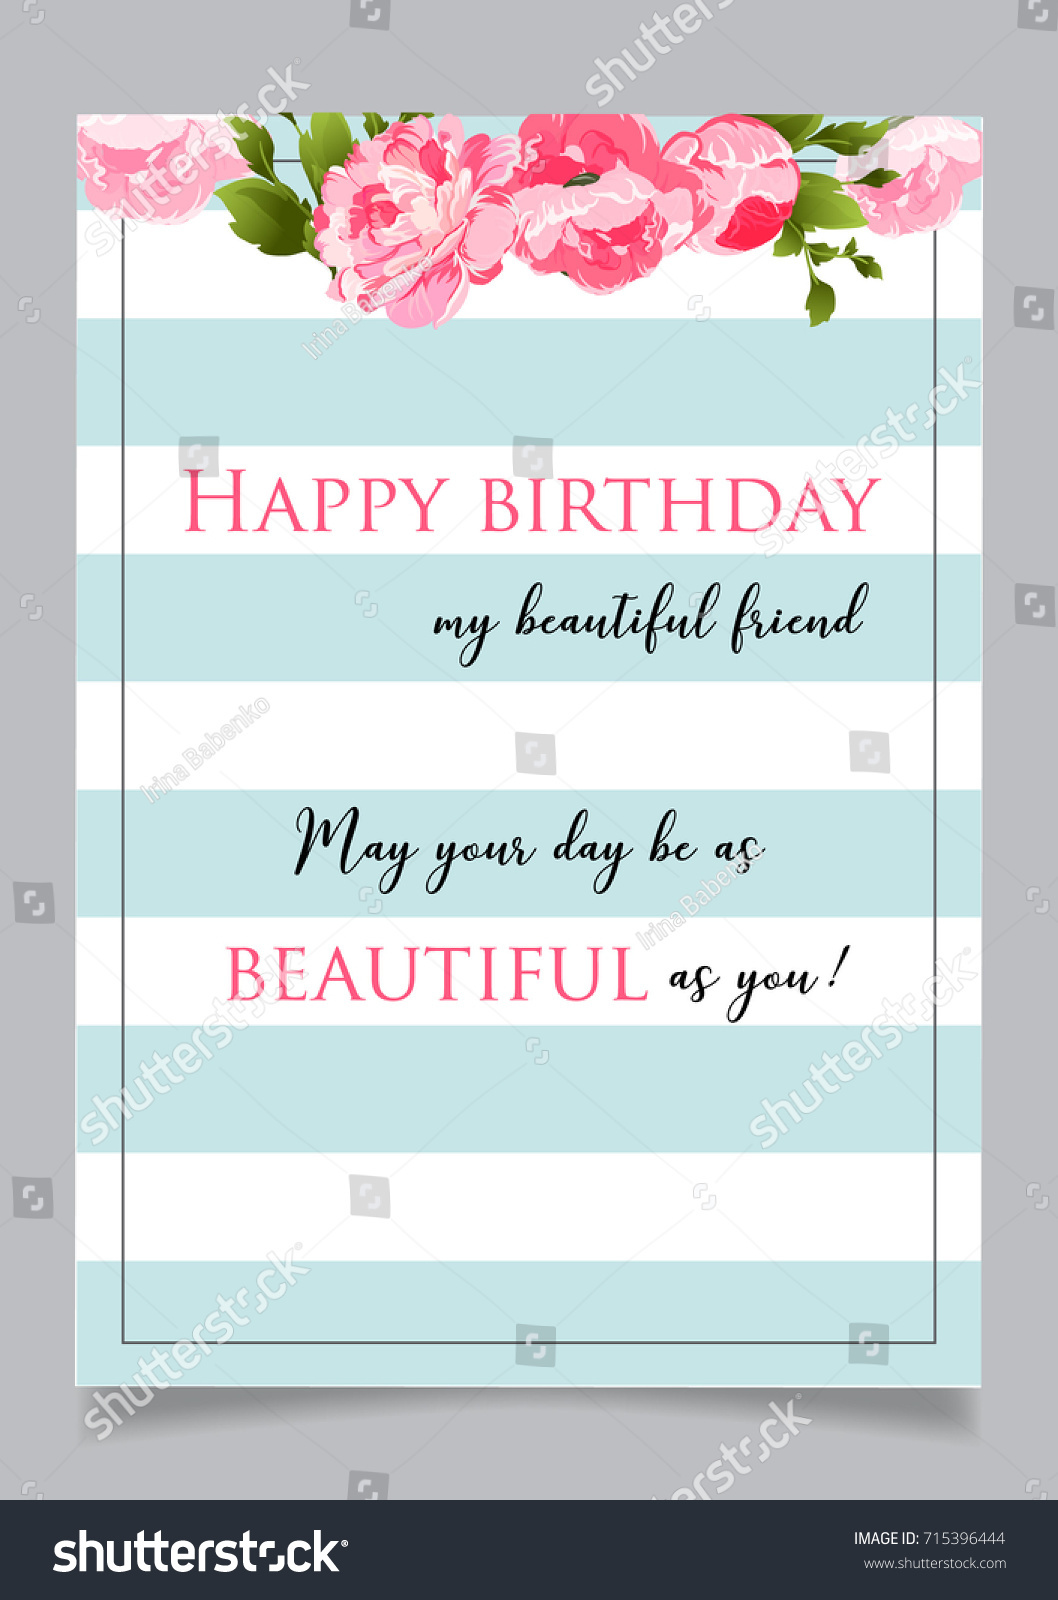 Birthday Greeting Card With Text Happy To My Beautiful Friend May You Day Be